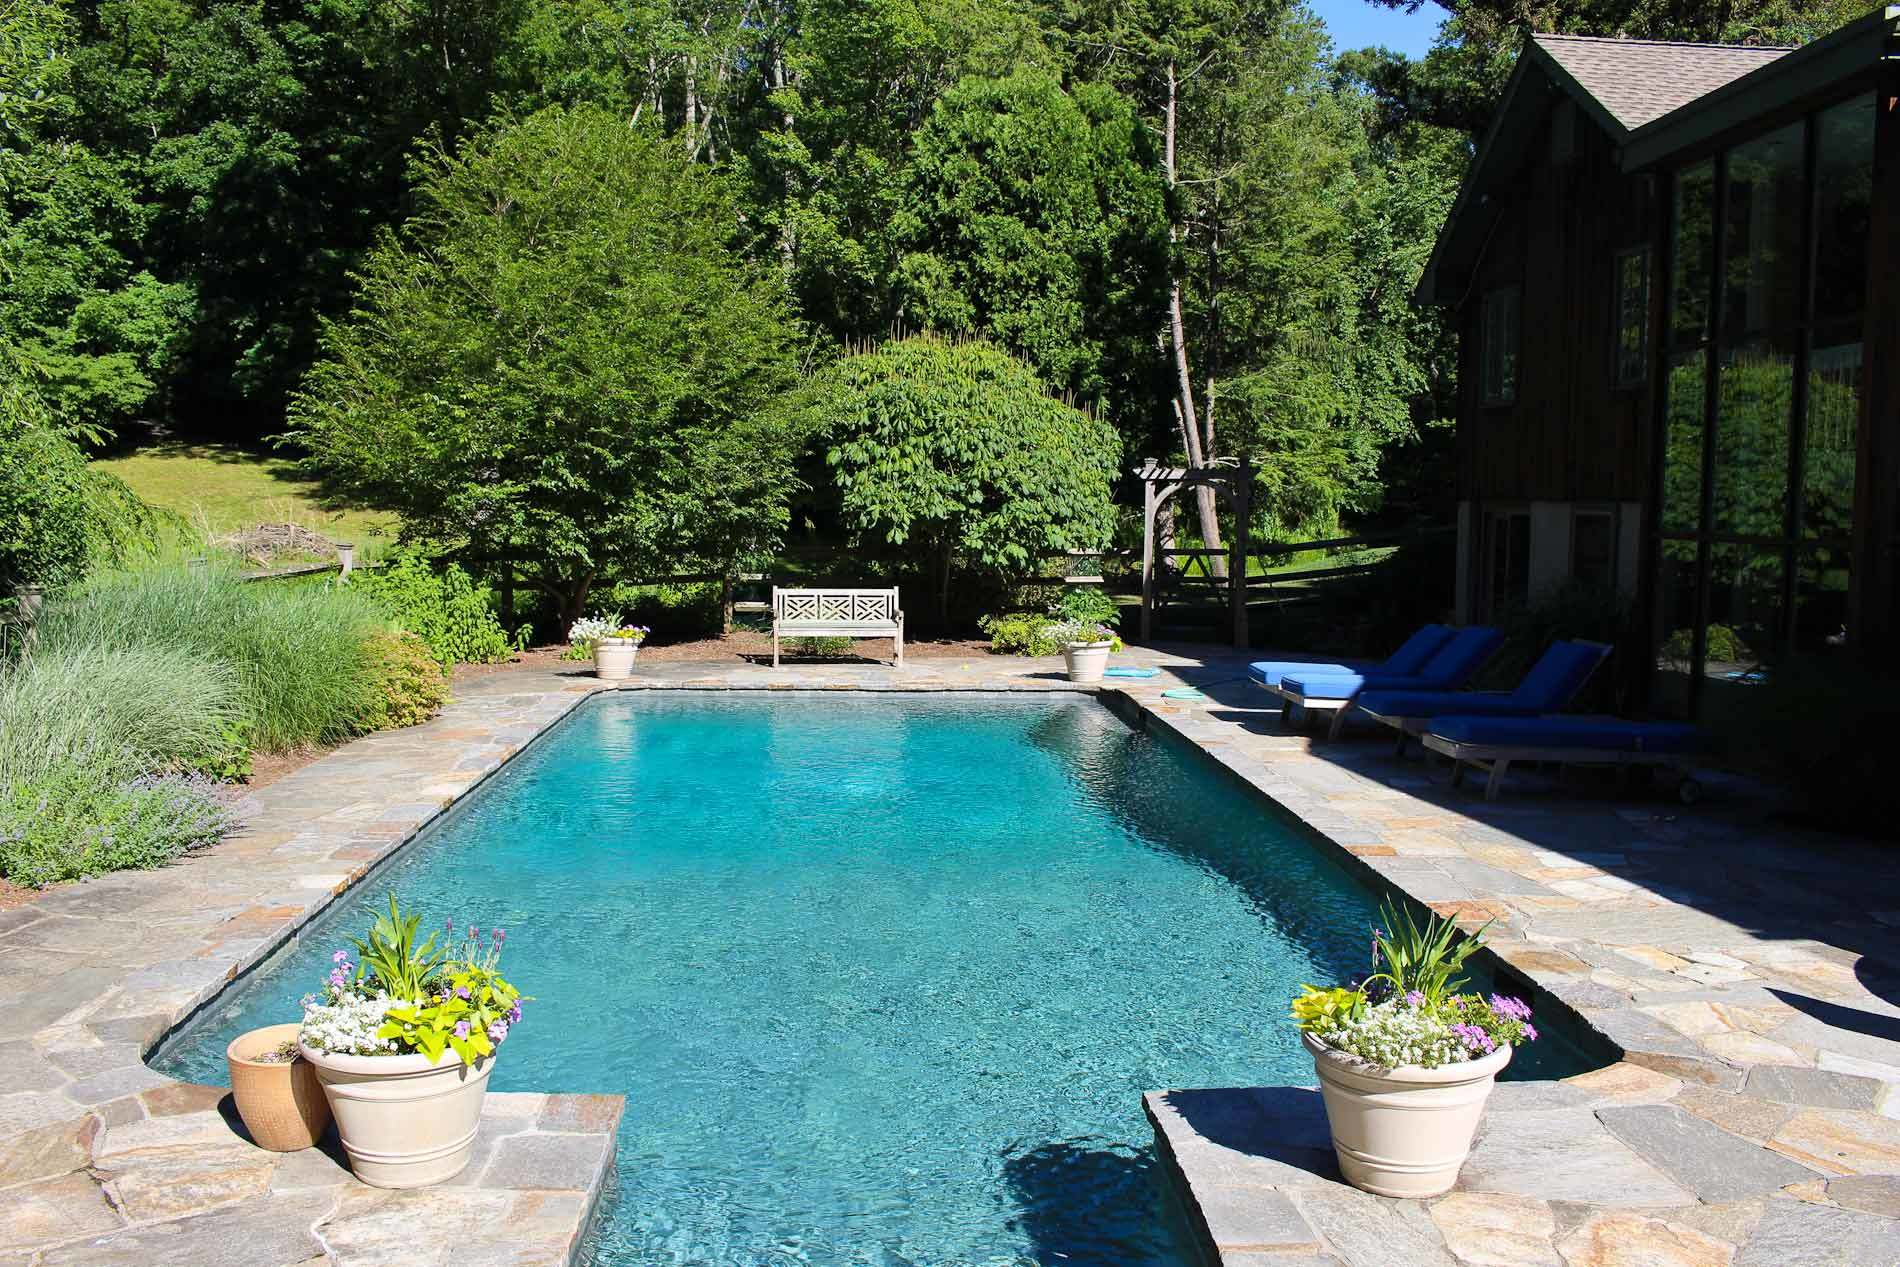 Homes with swimming pool for sale in brookfield ct find - Houses for sale with a swimming pool ...